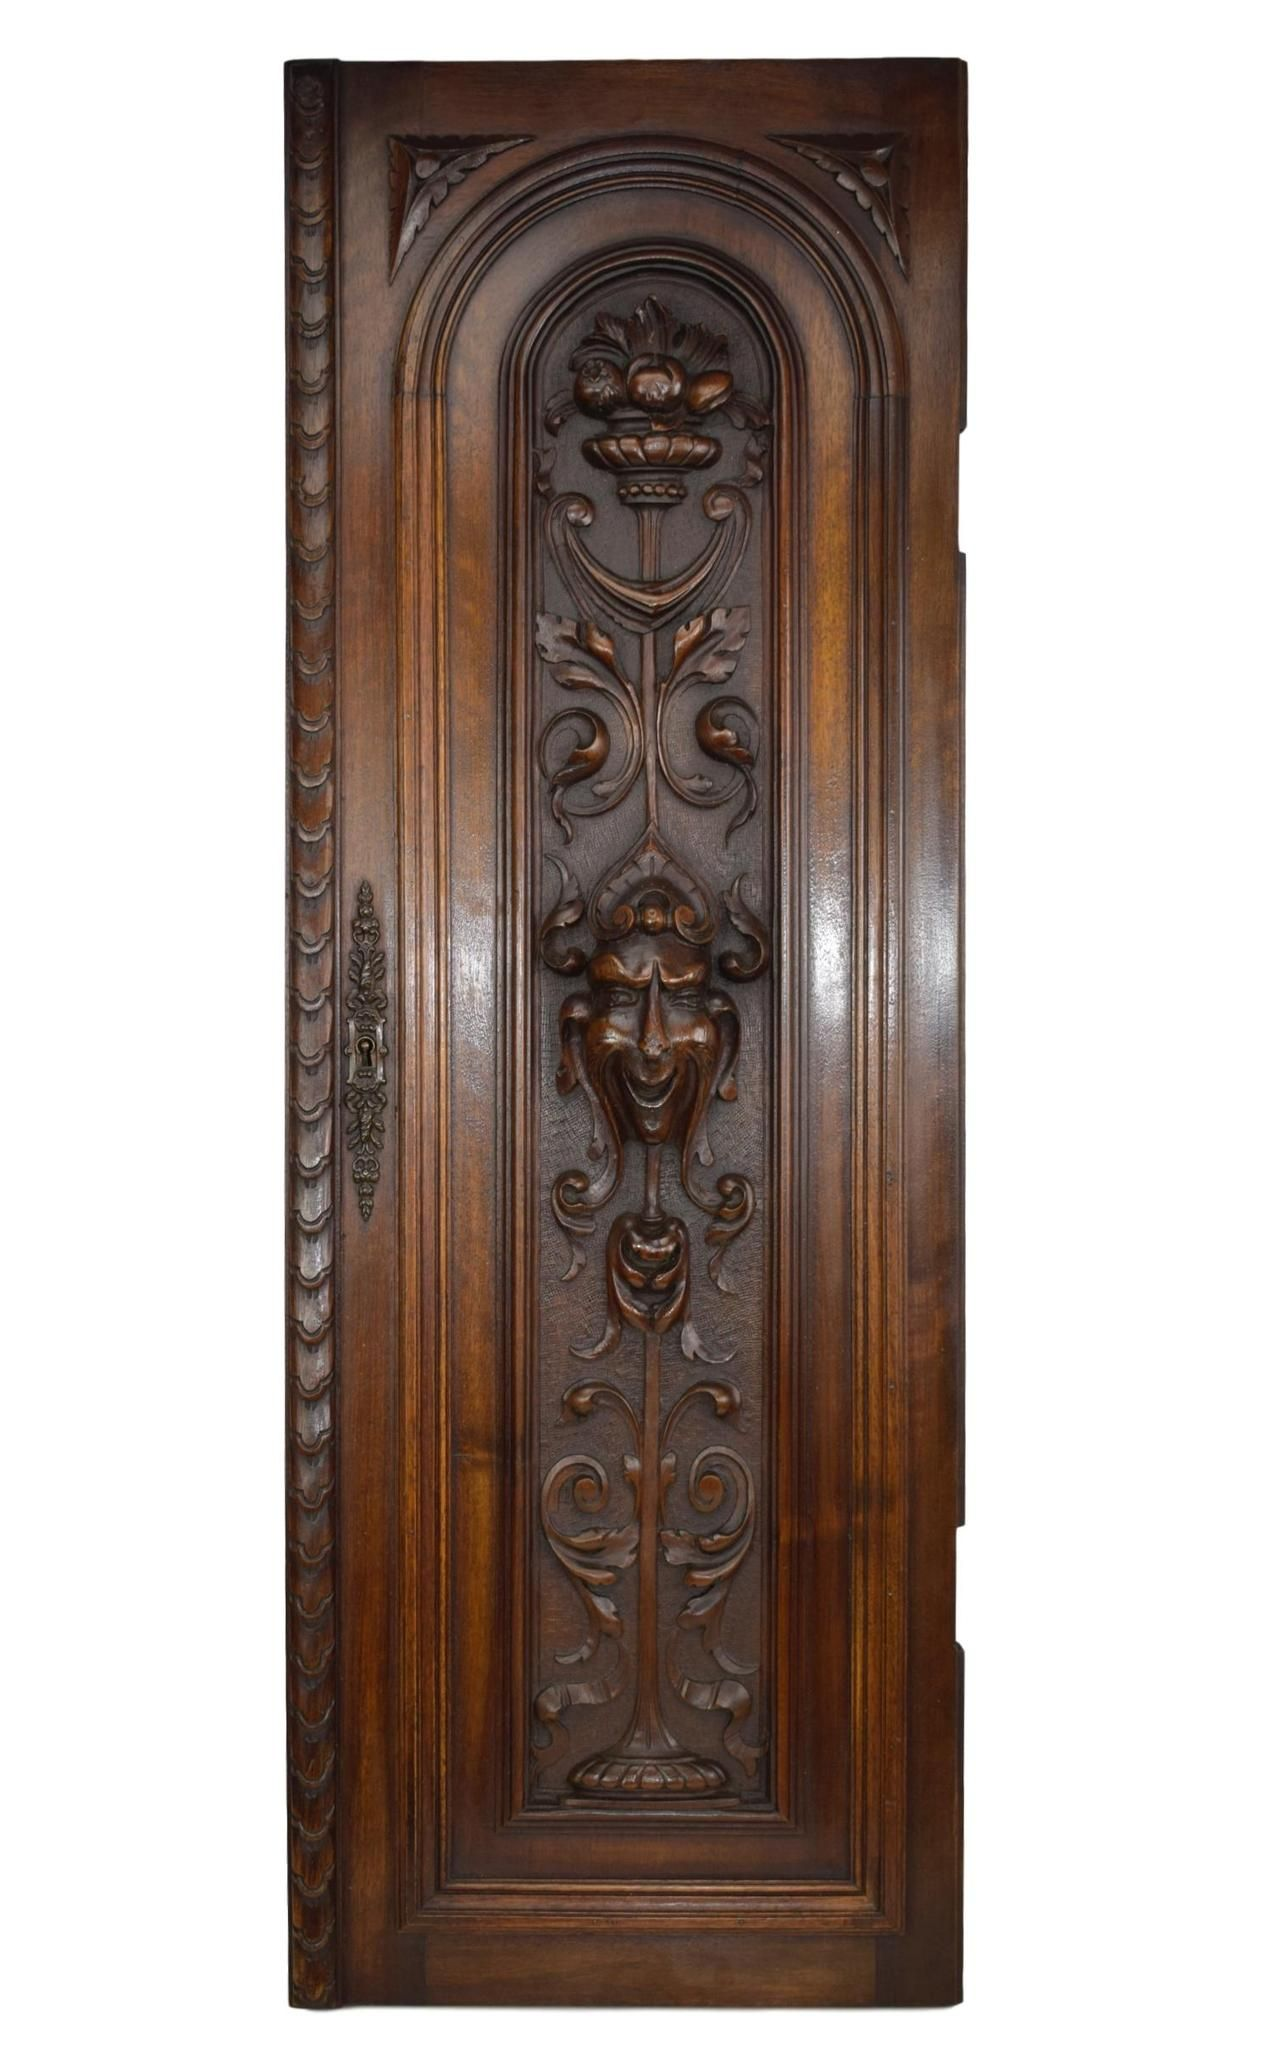 French Antique Neo Gothic Large Carved Salvaged Wood Door - Grotesque Wall  Panel - Renaissance Style - Grotesque Door In 2018 Carvings Pinterest French Antiques